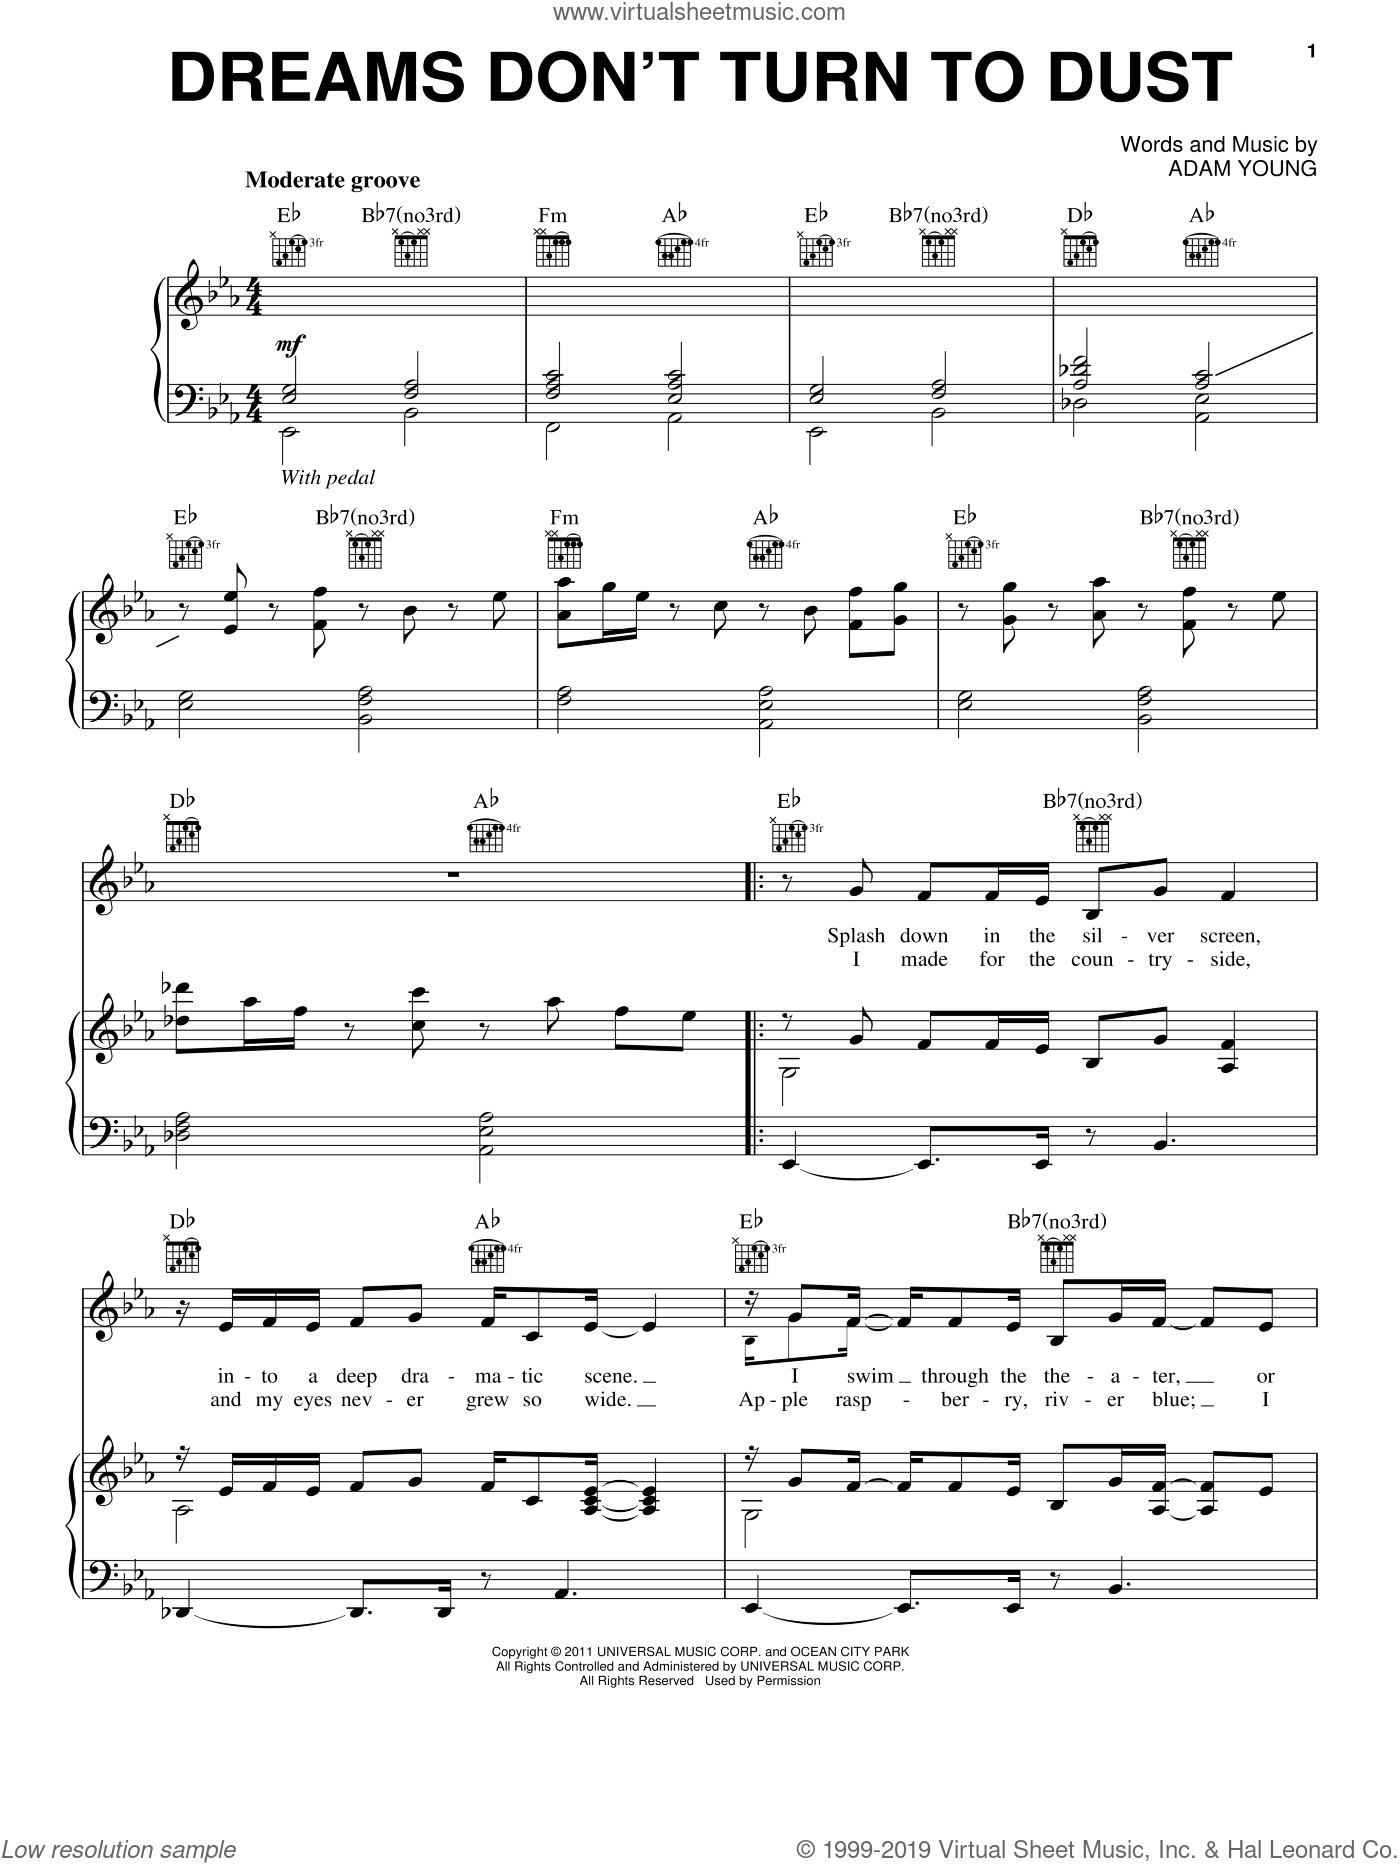 Dreams Don't Turn To Dust sheet music for voice, piano or guitar by Owl City and Adam Young, intermediate skill level